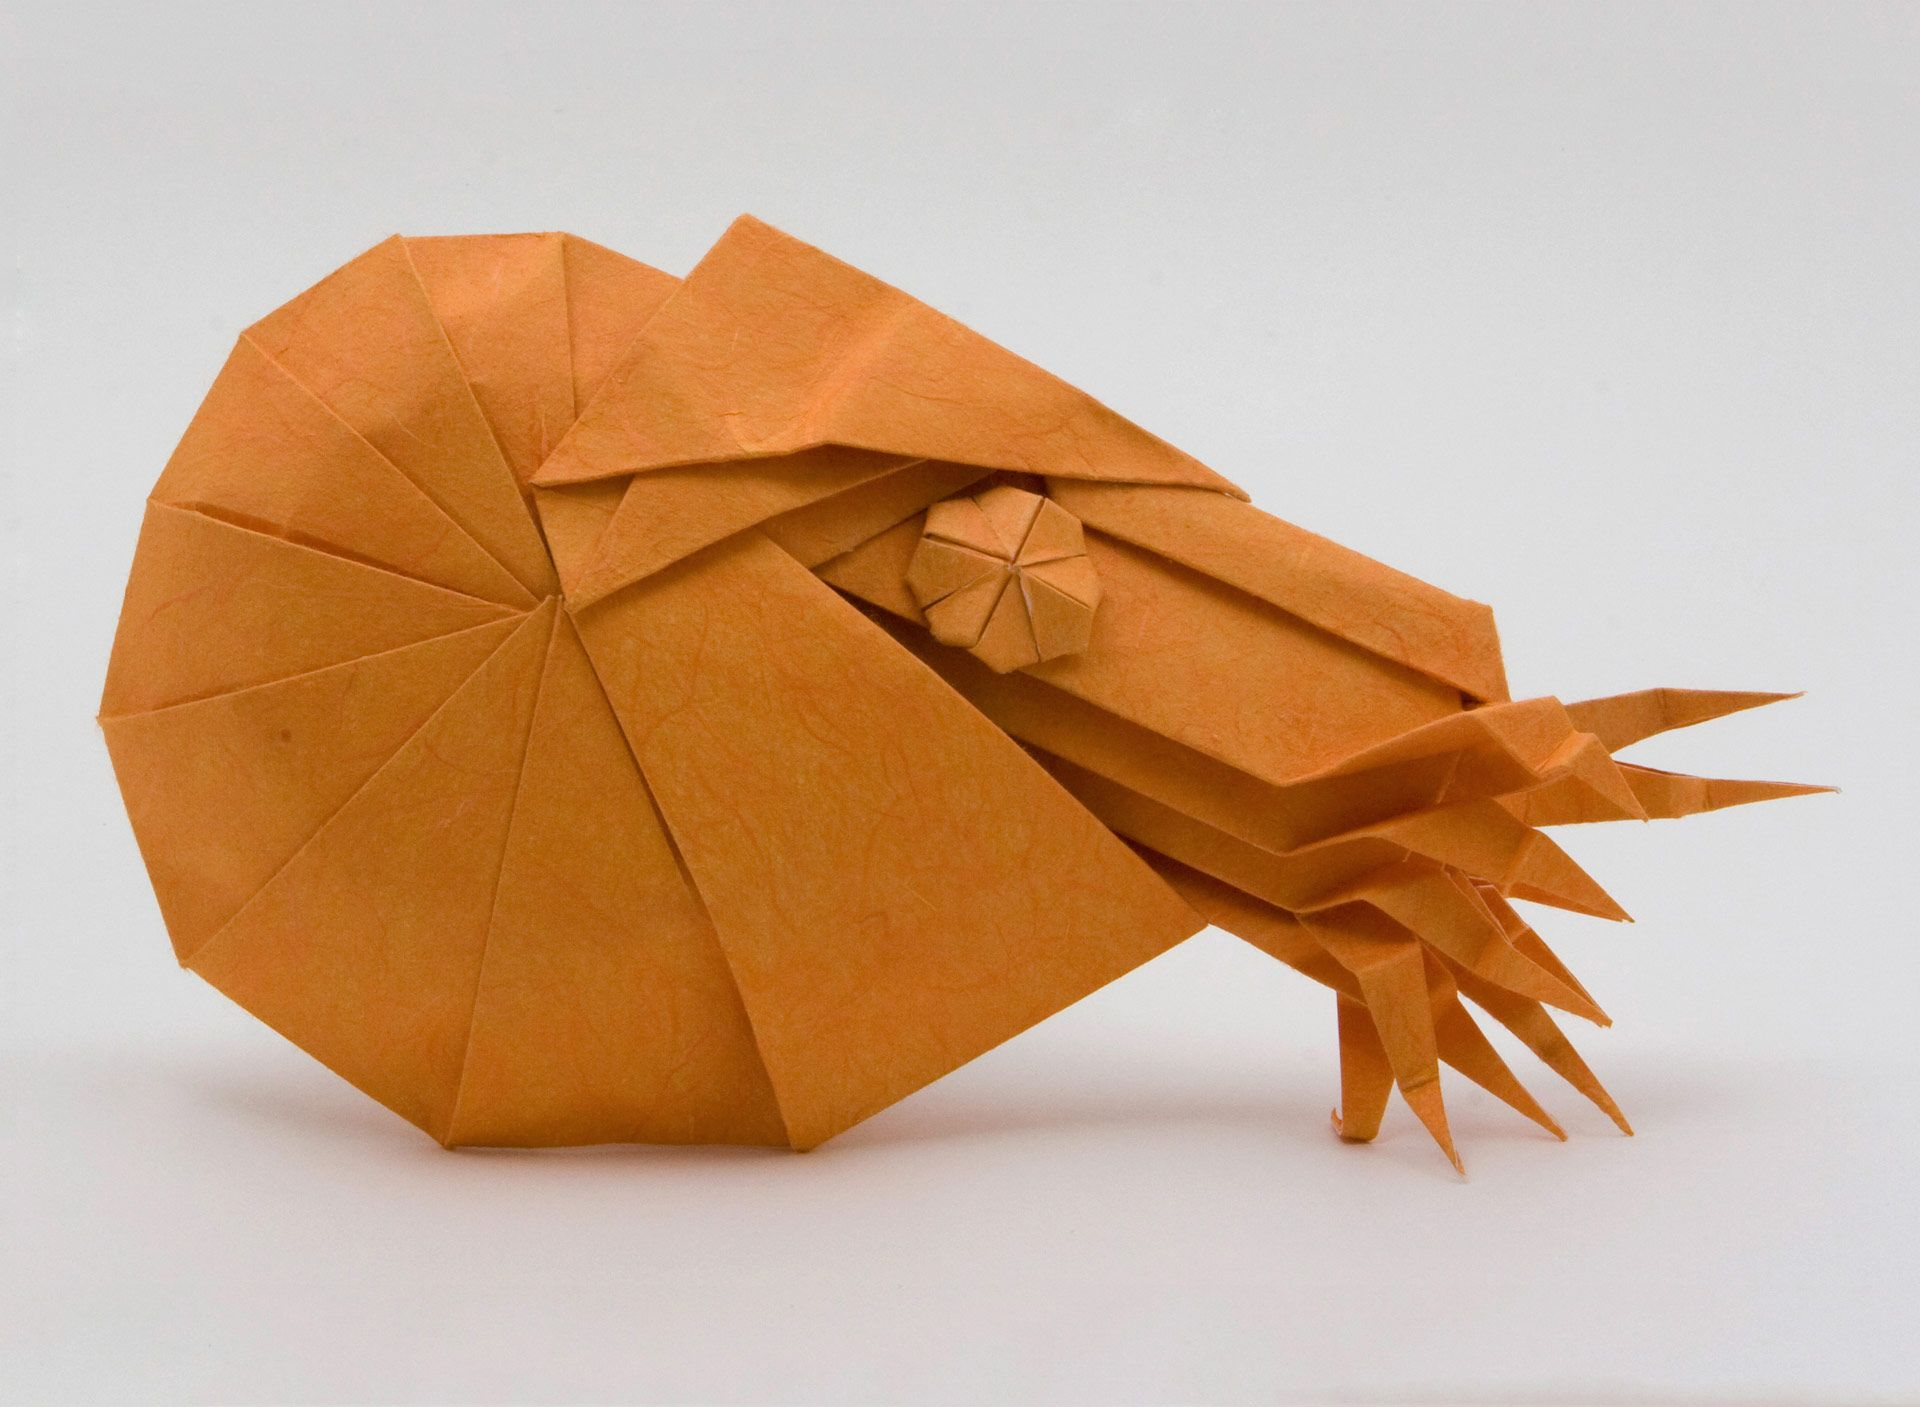 Origami bust little by eric joisel folded by gilad aharoni origami bust little by eric joisel folded by gilad aharoni origami pinterest origami papercraft and oragami jeuxipadfo Image collections